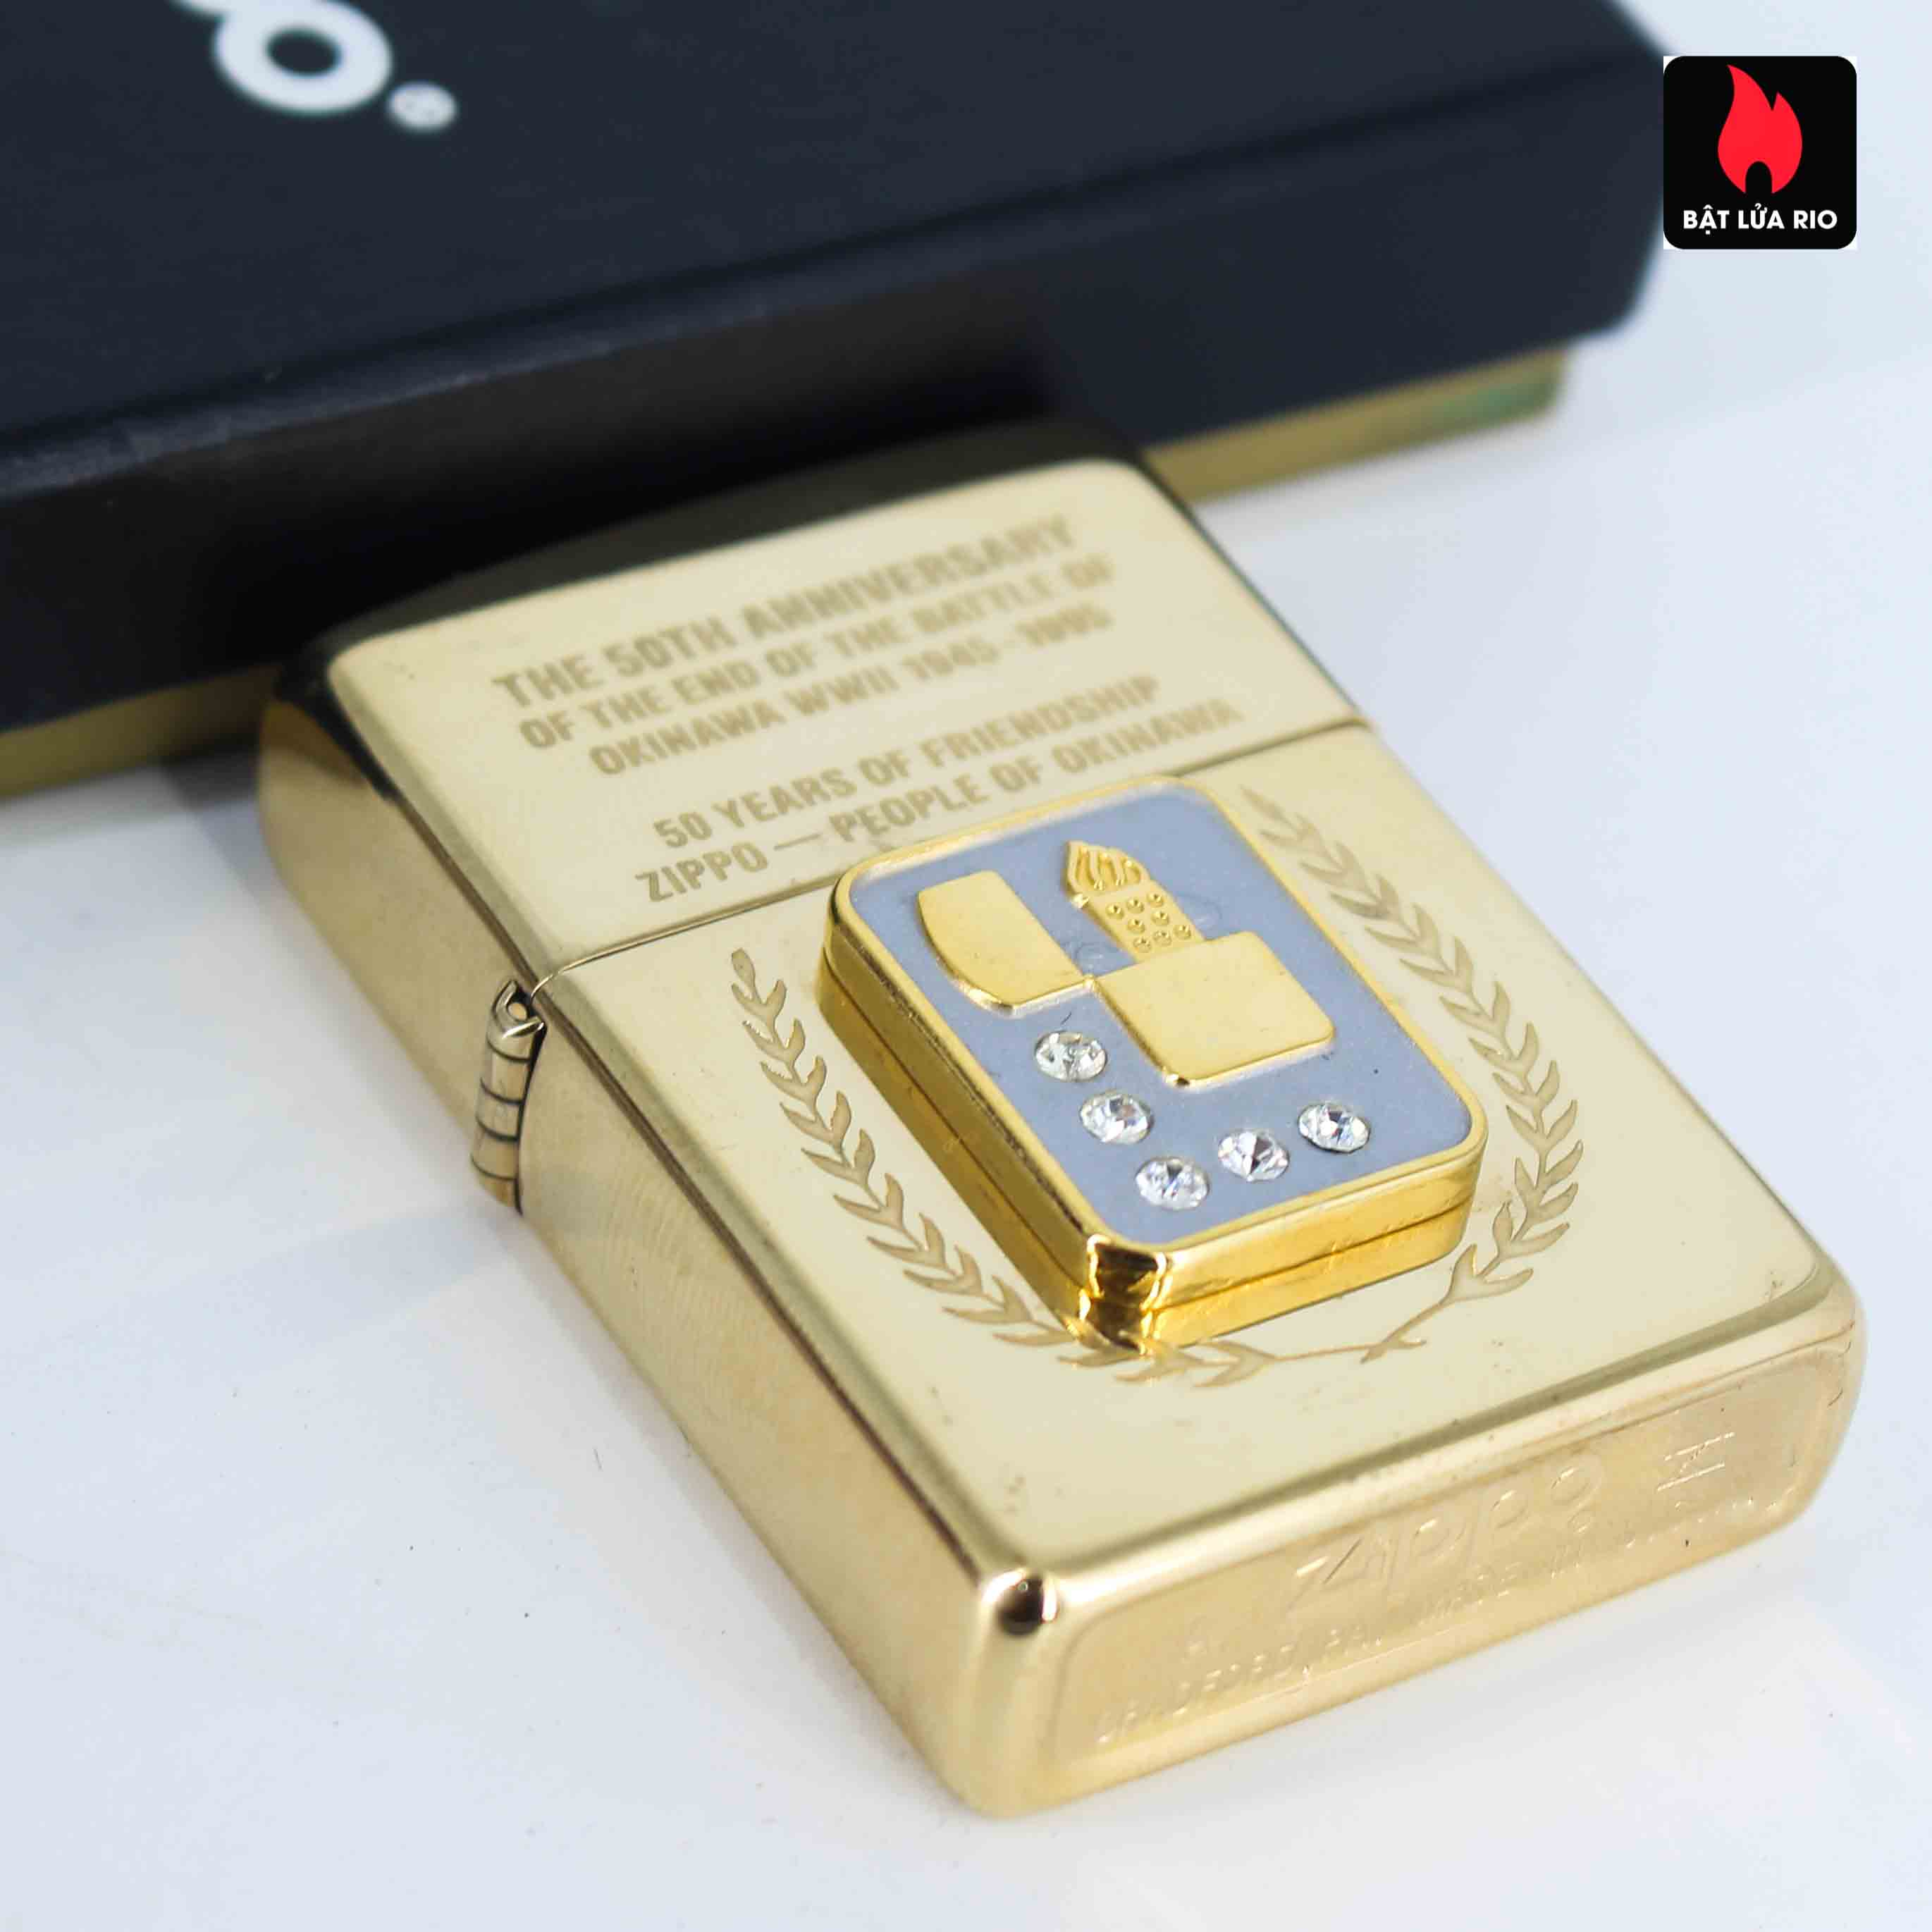 Zippo La Mã 1995 - 50th Anniversary Of The And Of The Battle Of Okinawa WWII 1945-1995 7